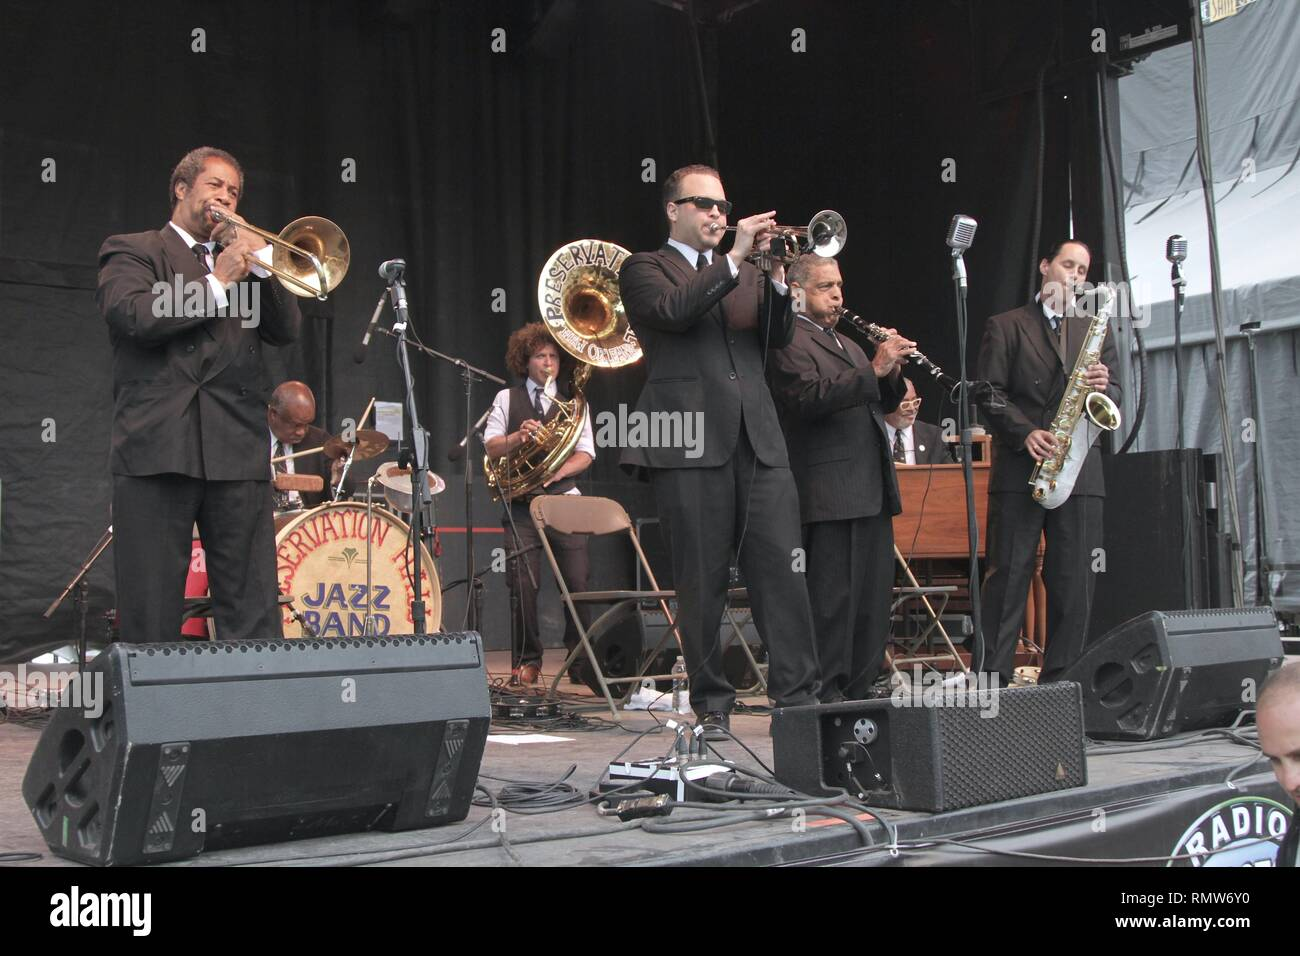 Musicians of the Preservation Hall Jazz Band are shown